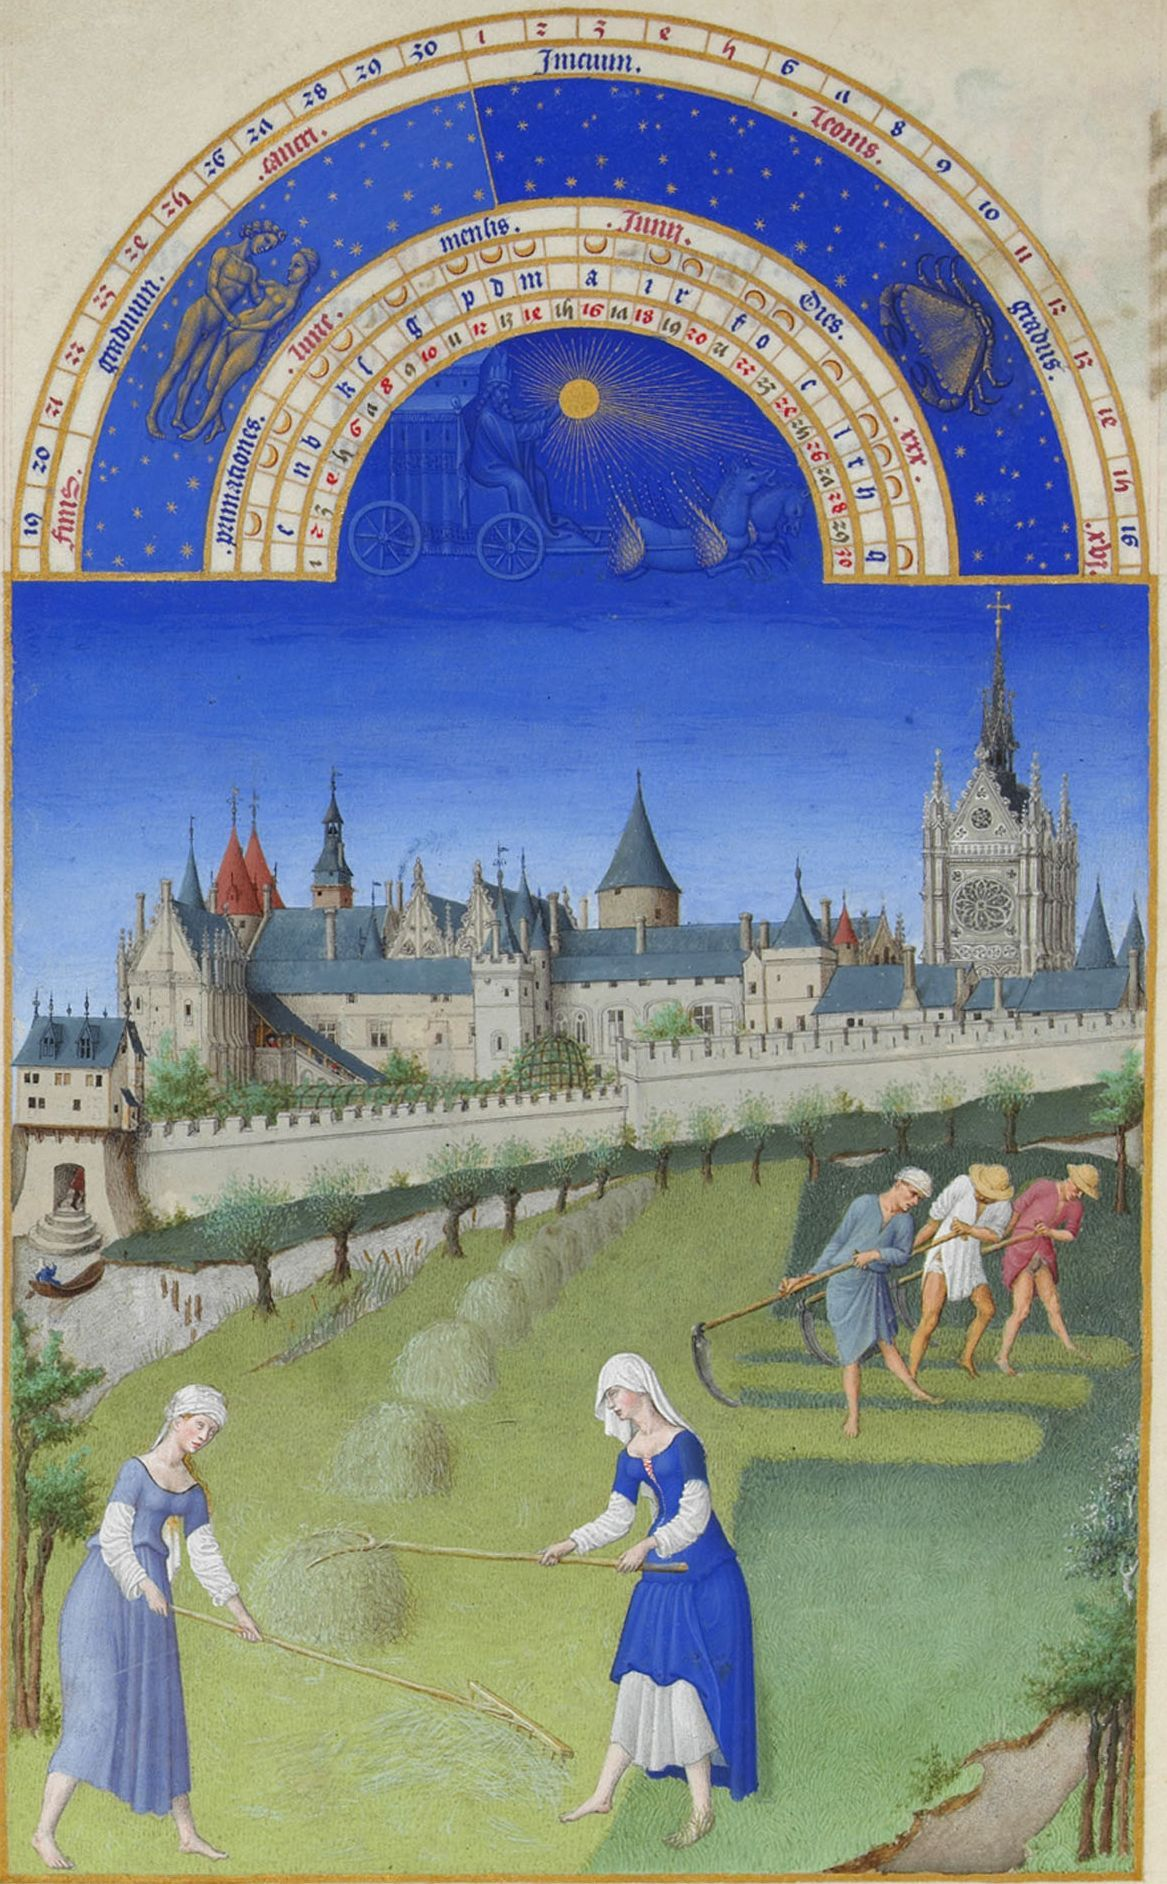 June from Les Très Riches Heures du duc de Berry by the Limbourg brothers, 1412